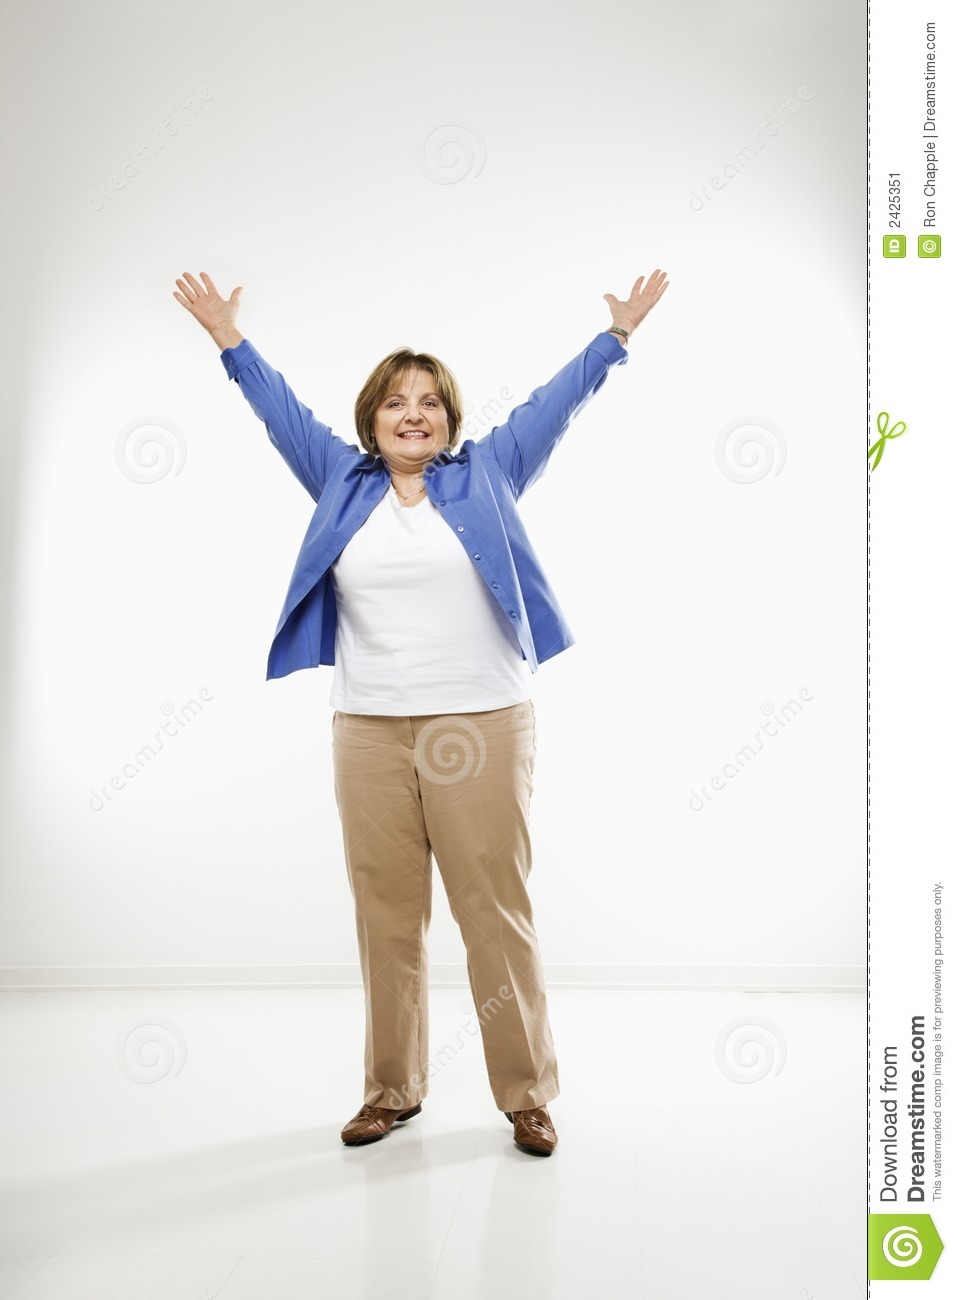 woman with arms outstretched stock image image of person cheer